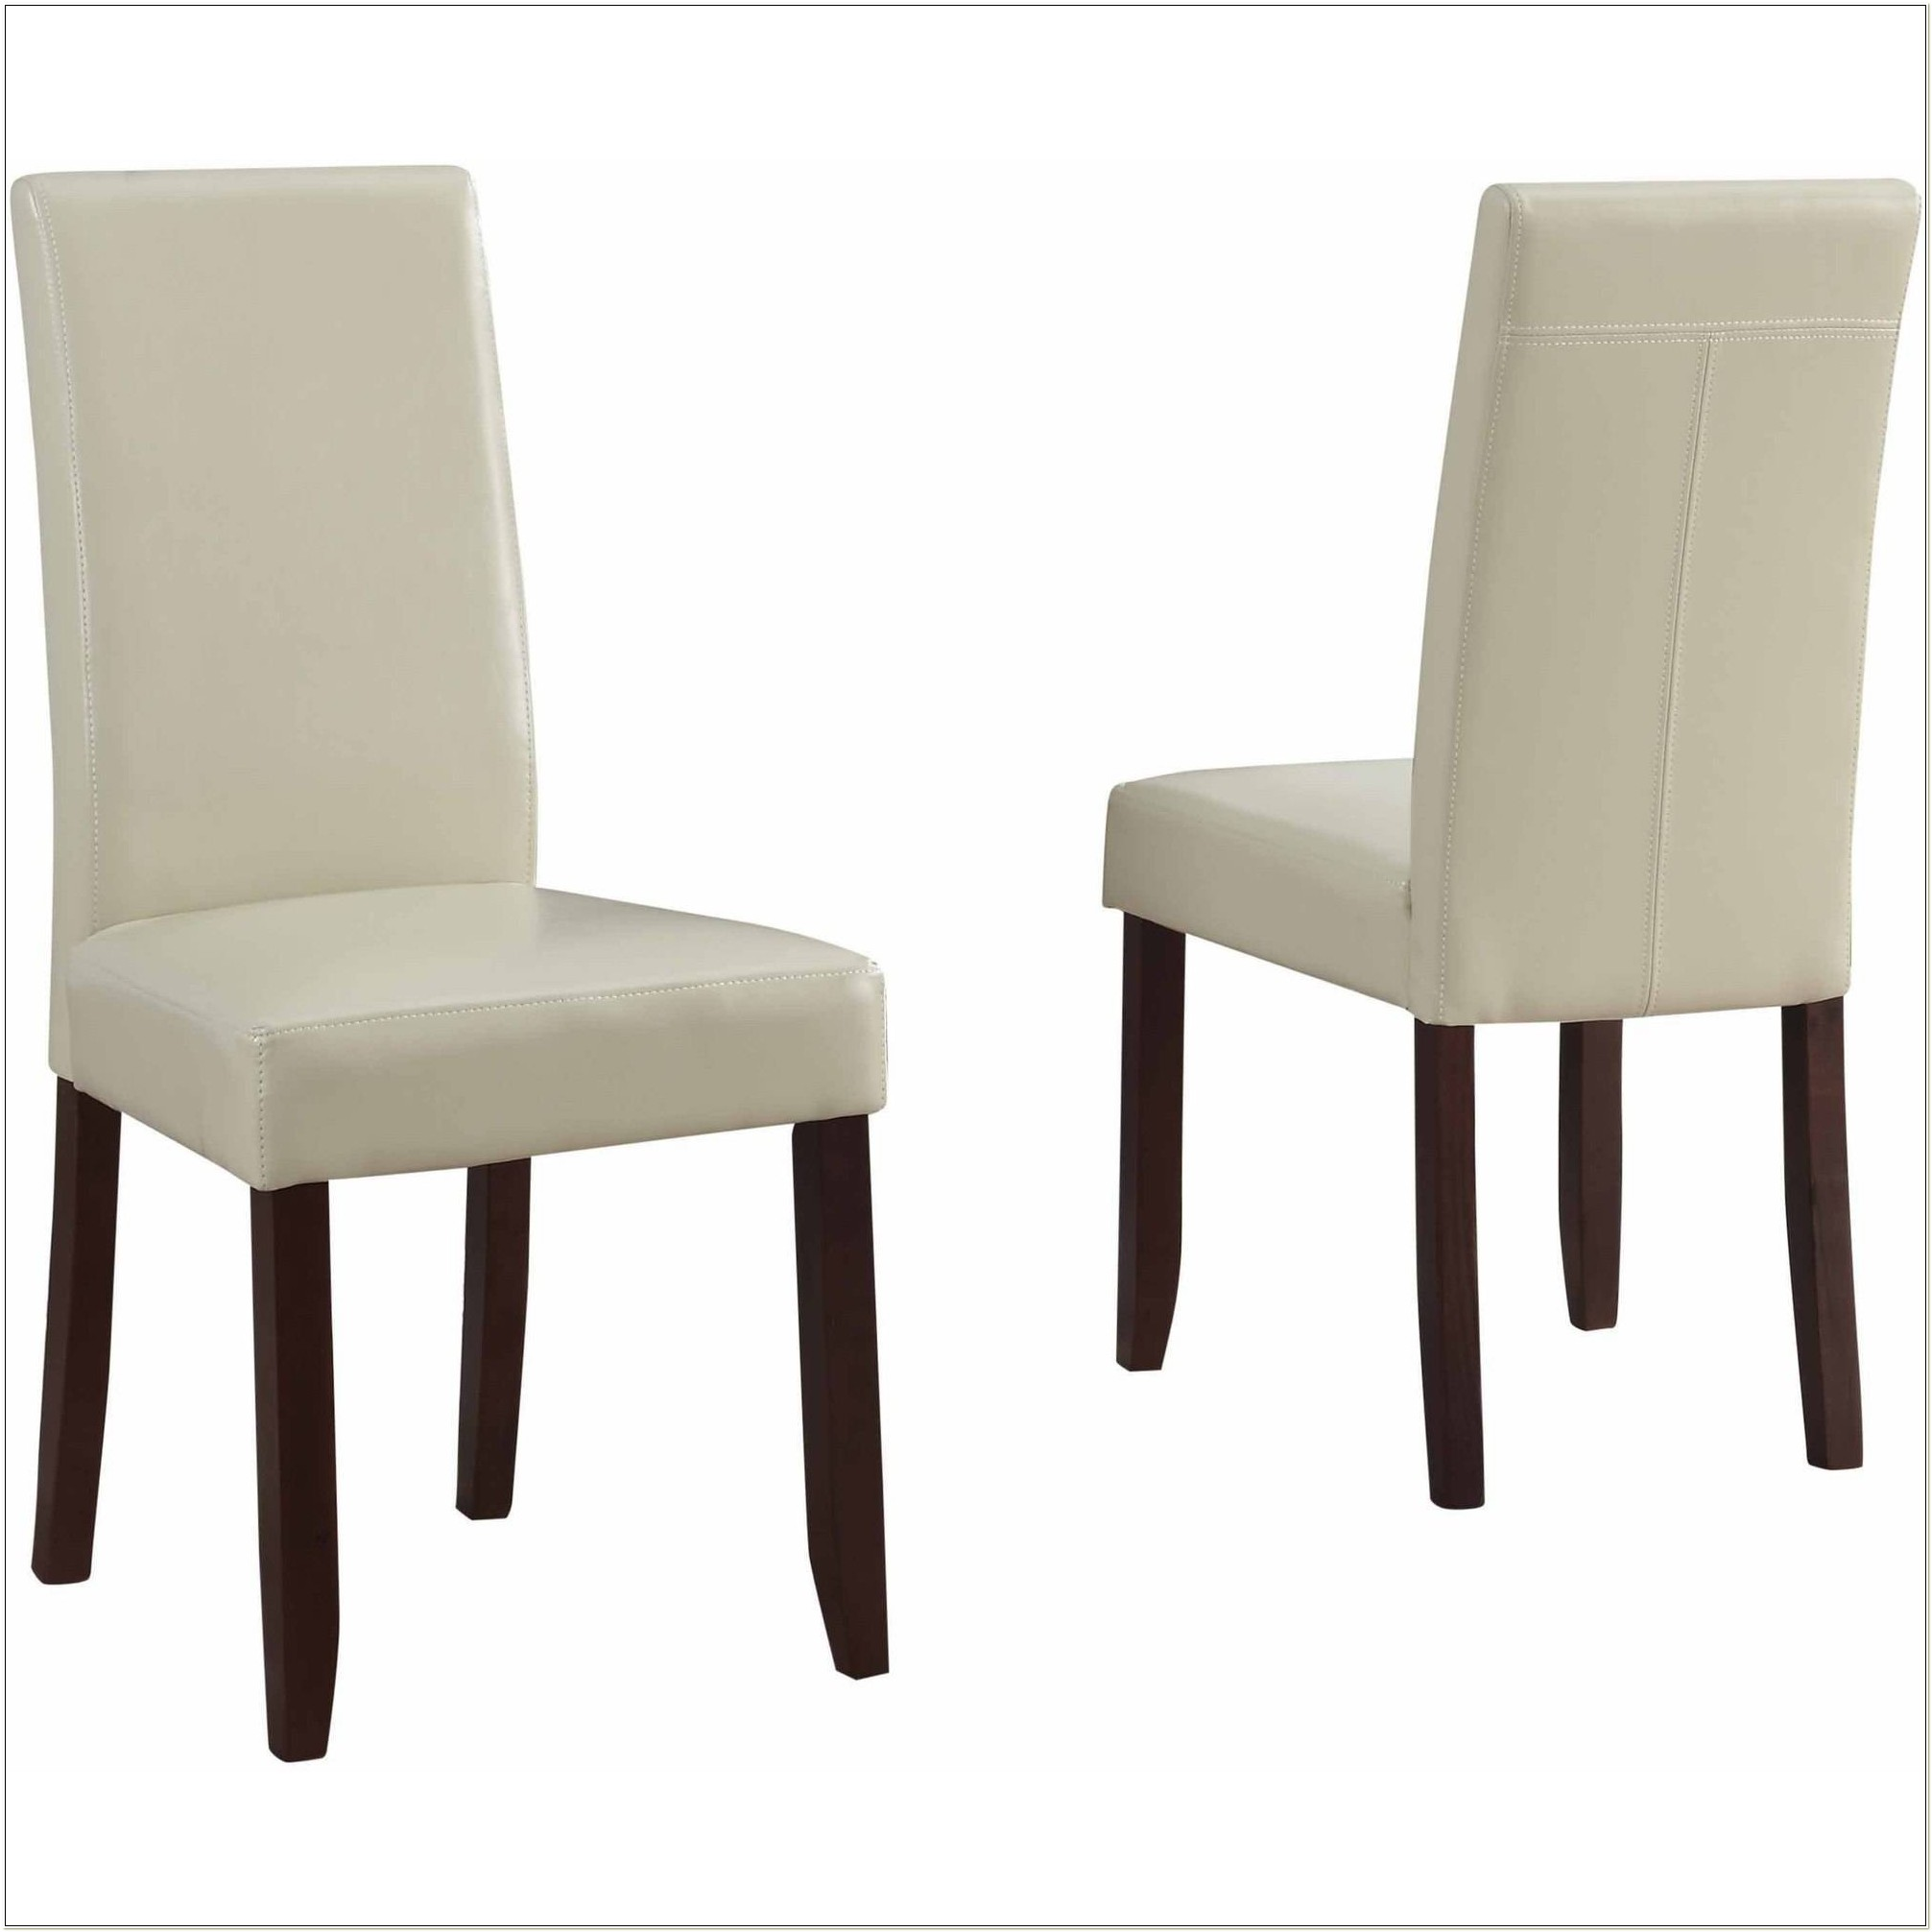 Dining Room Chairs Walmart